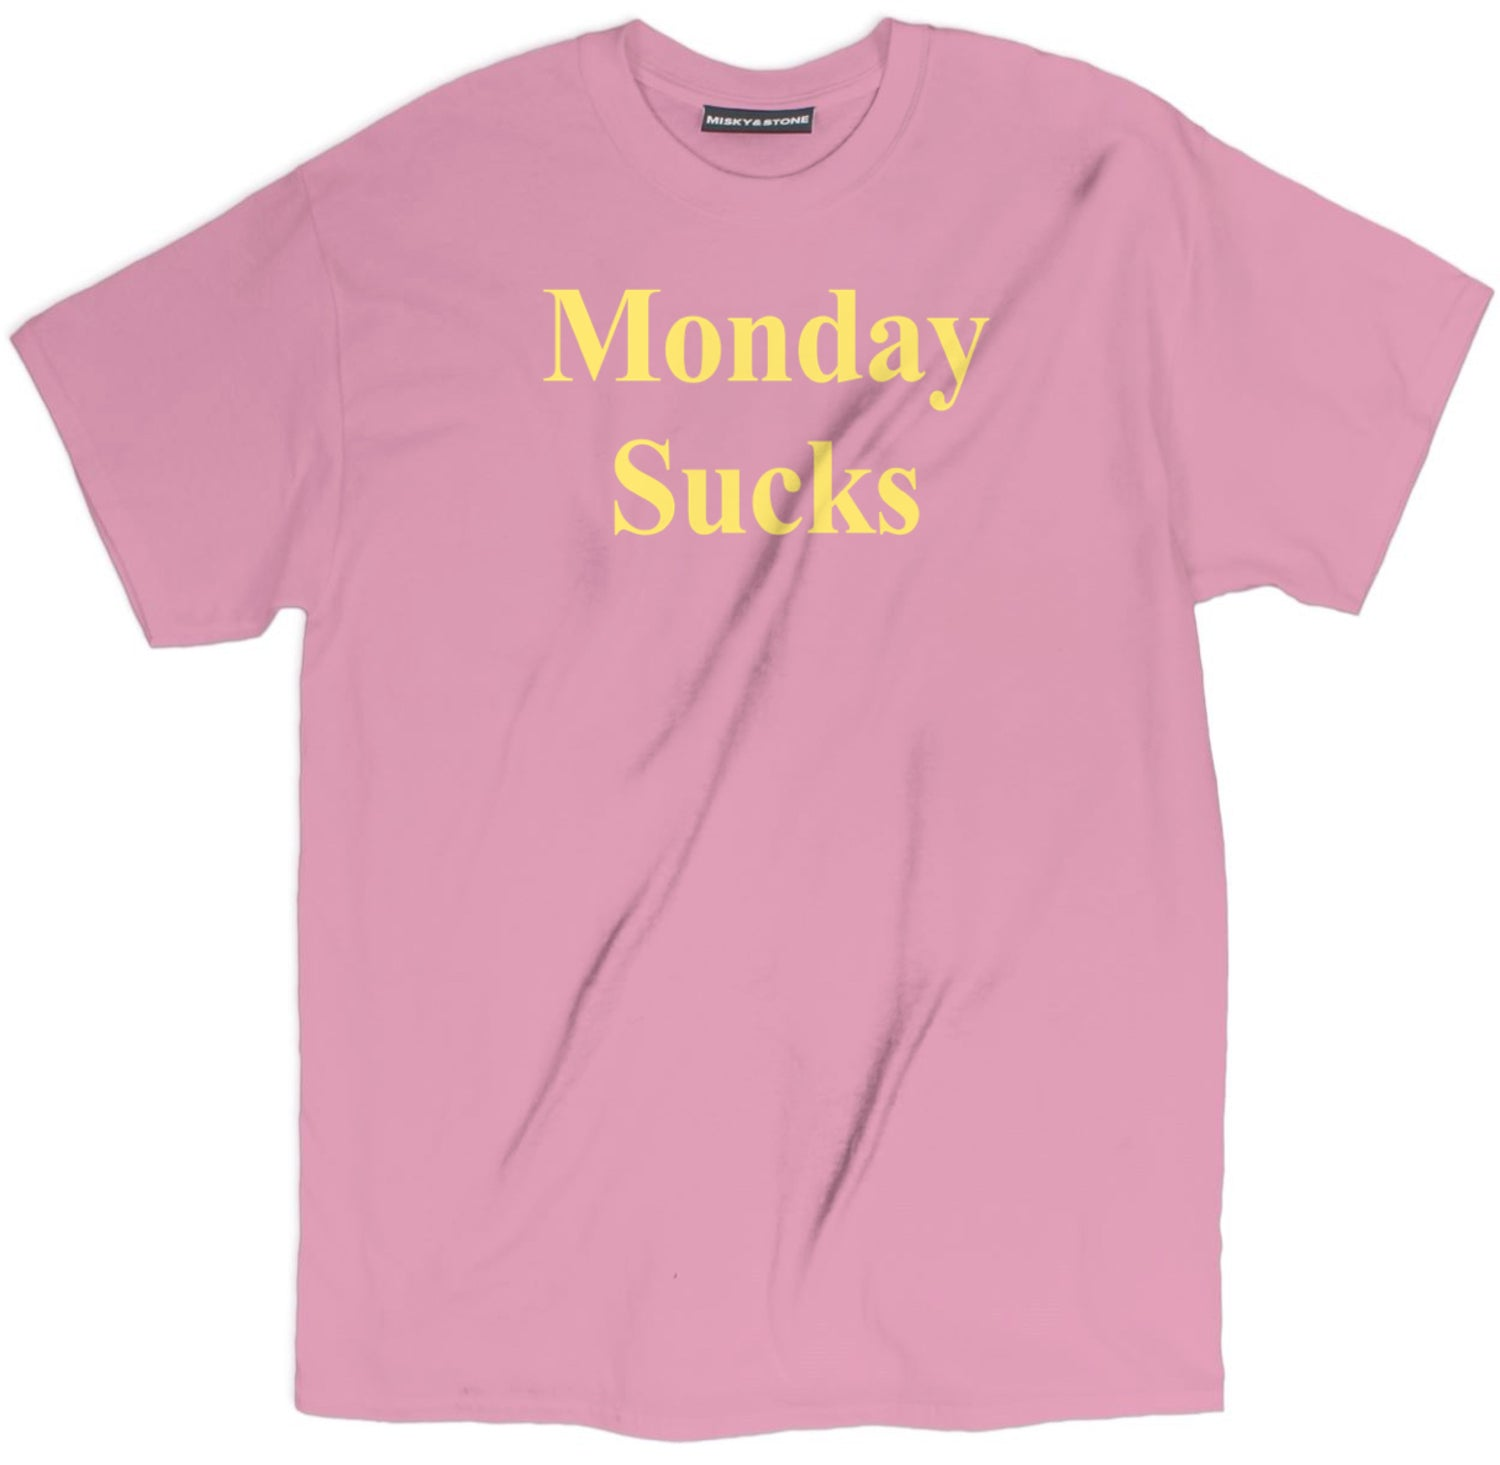 Monday Sucks Shirt